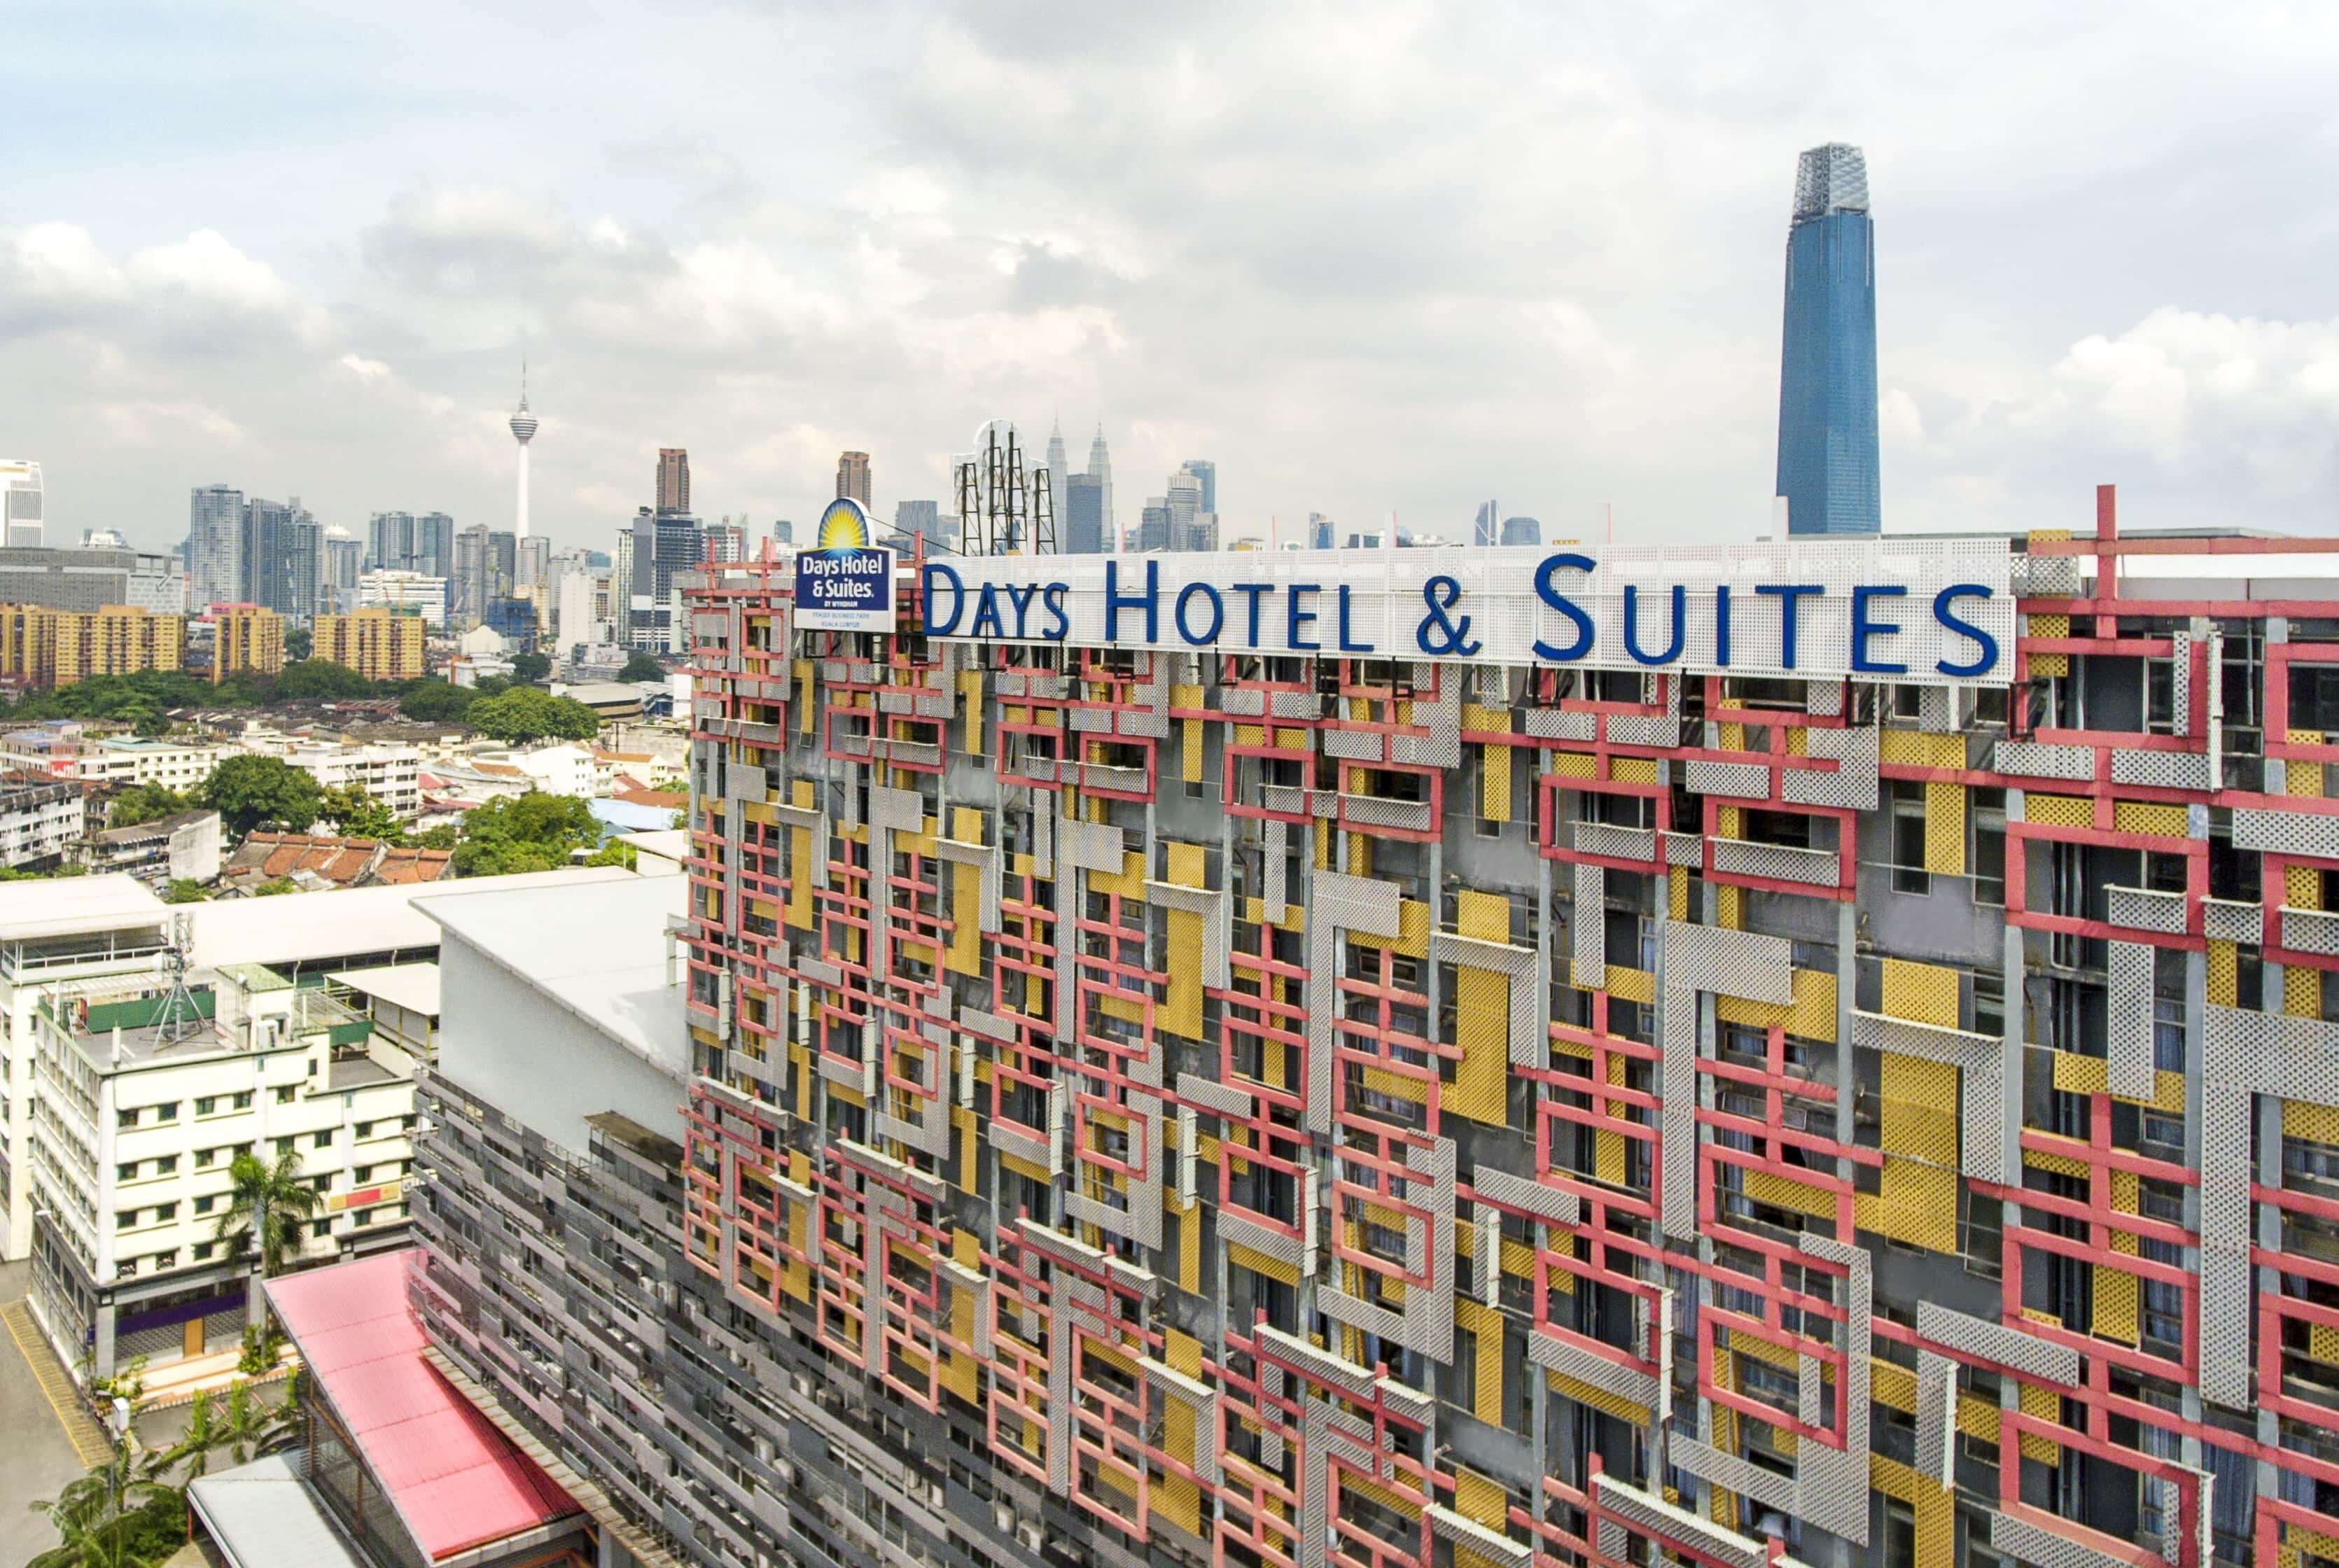 Days Hotel And Suites By Wyndham Fraser Business Park Kuala Lumpur